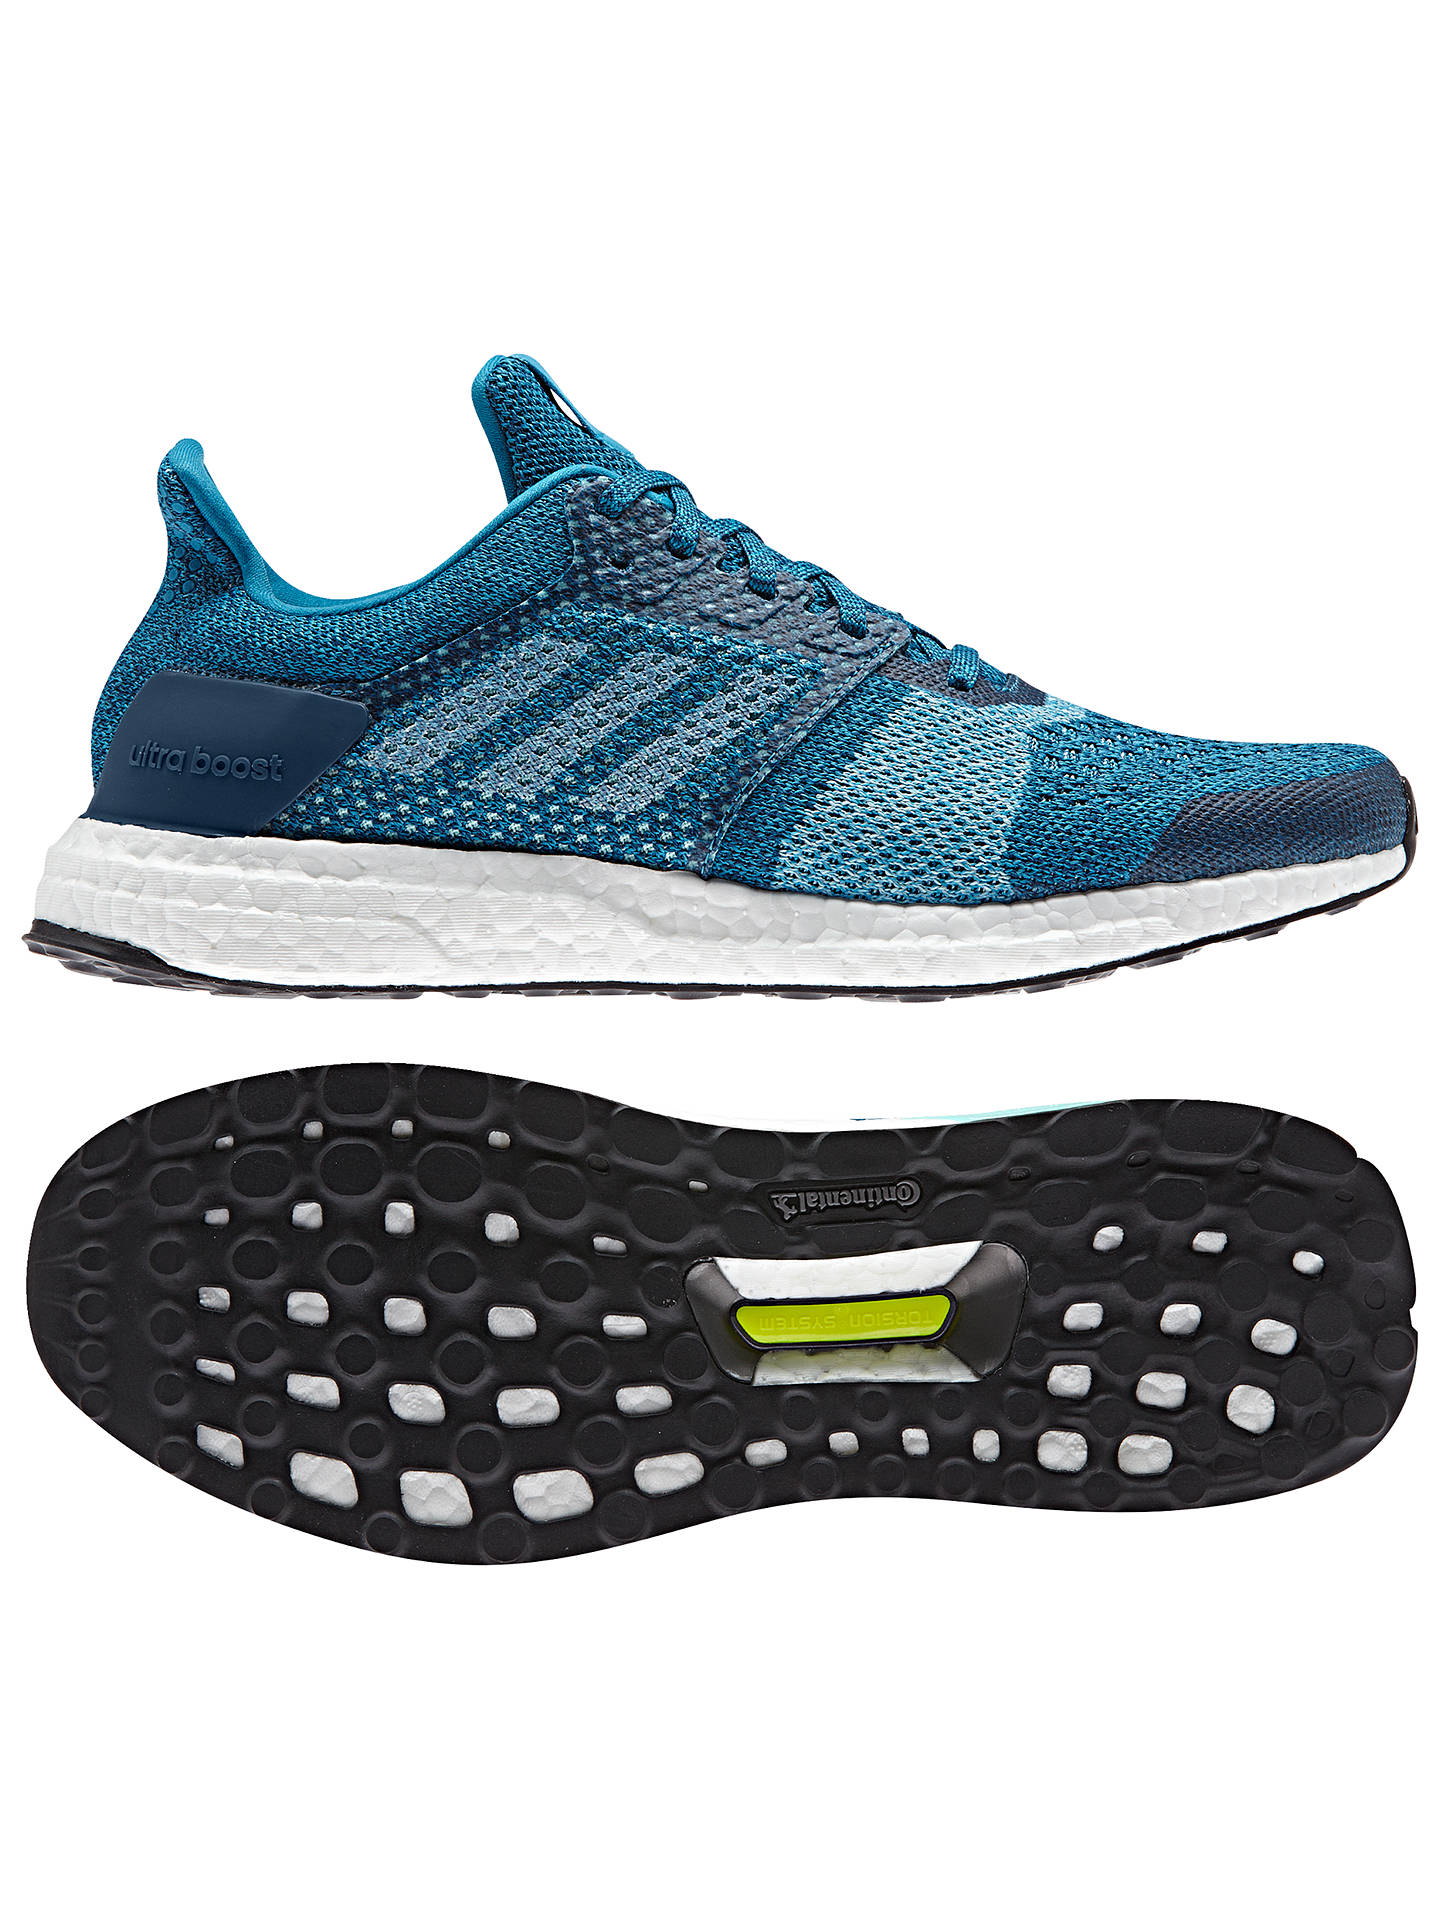 adidas UltraBOOST ST Men's Running Shoes, Blue NightMystery